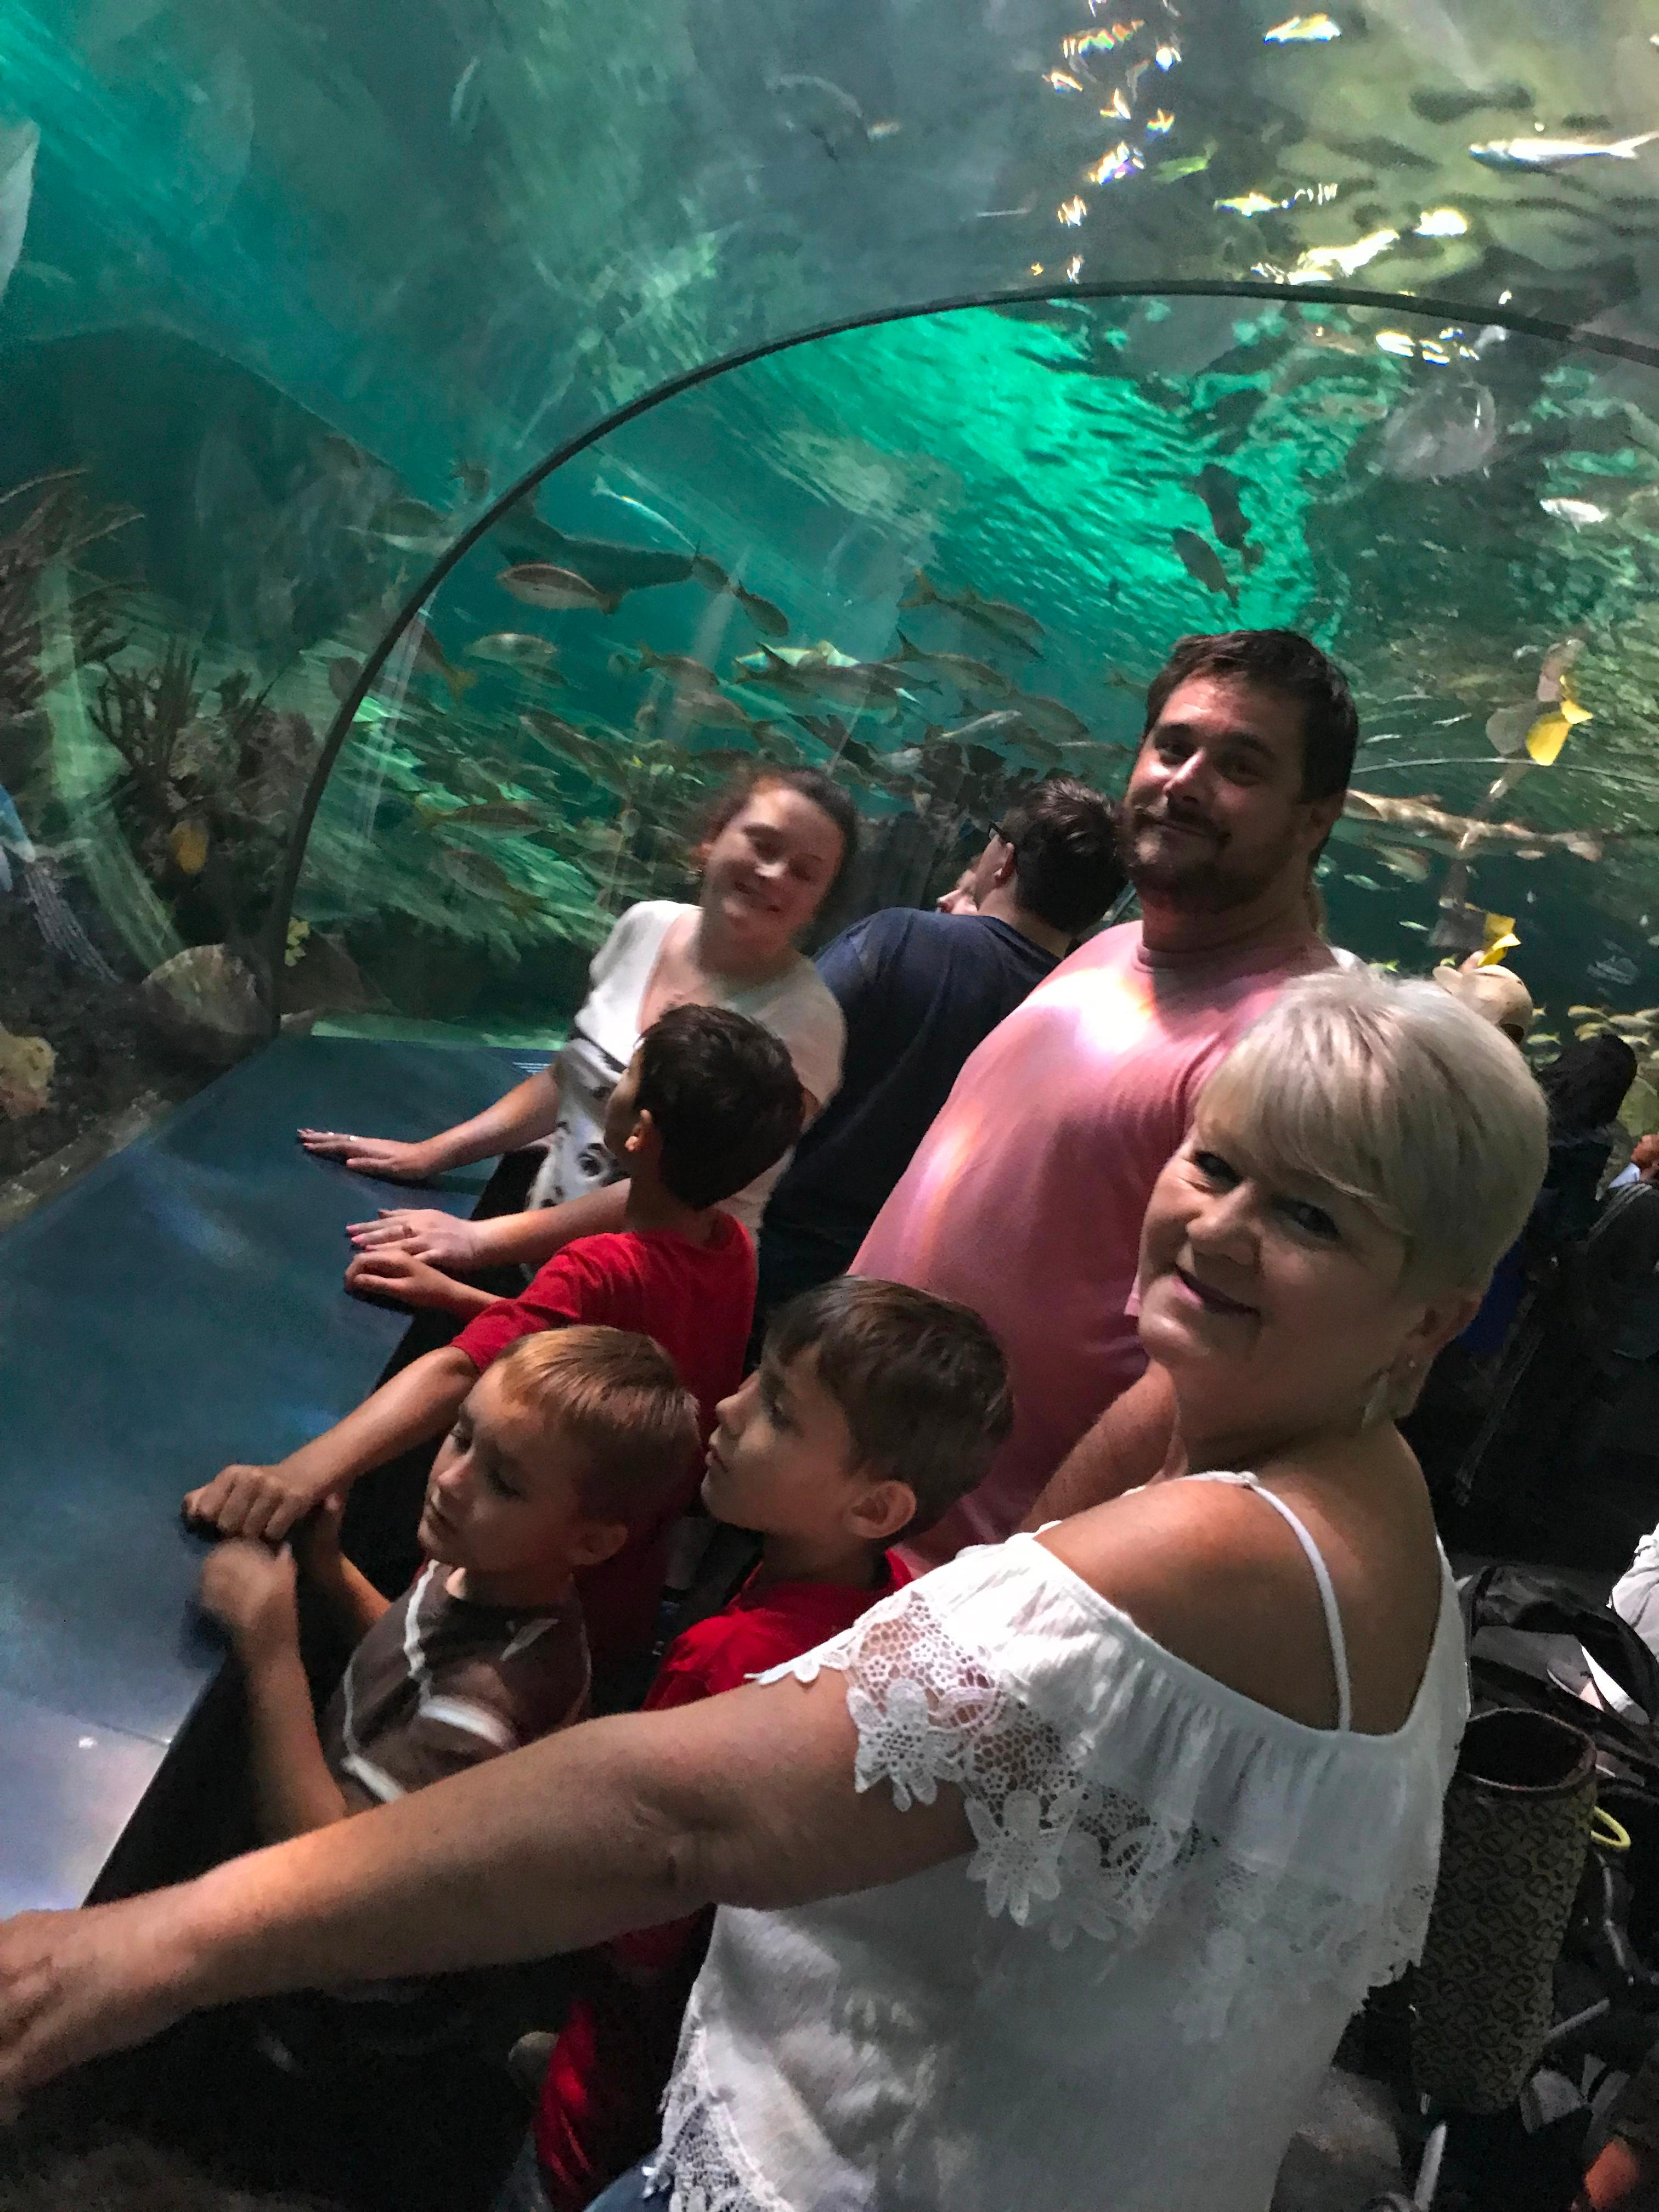 Family at Ripleys Aquarium of the Smokies